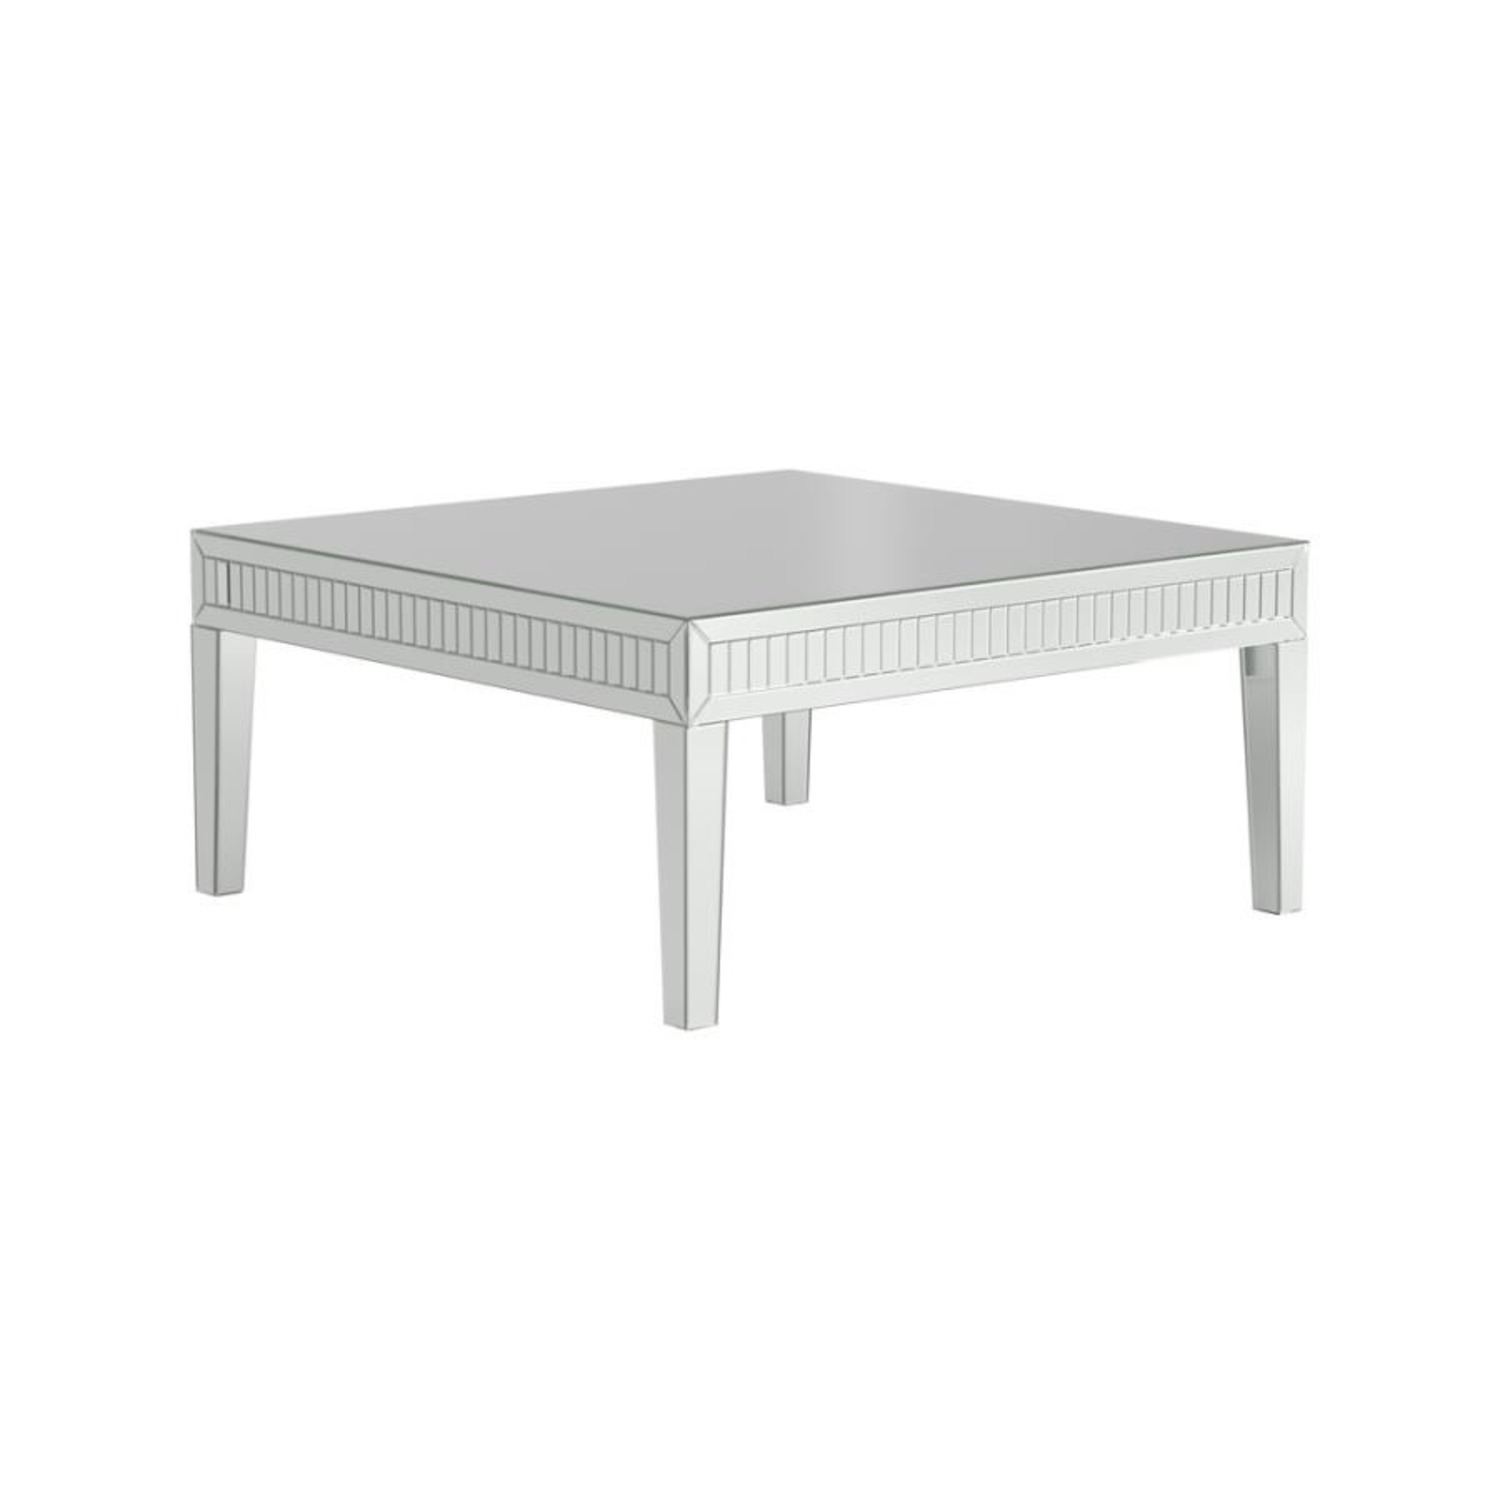 Coffee Table In Silver Finish W/ Mirror Tile Frame - image-0